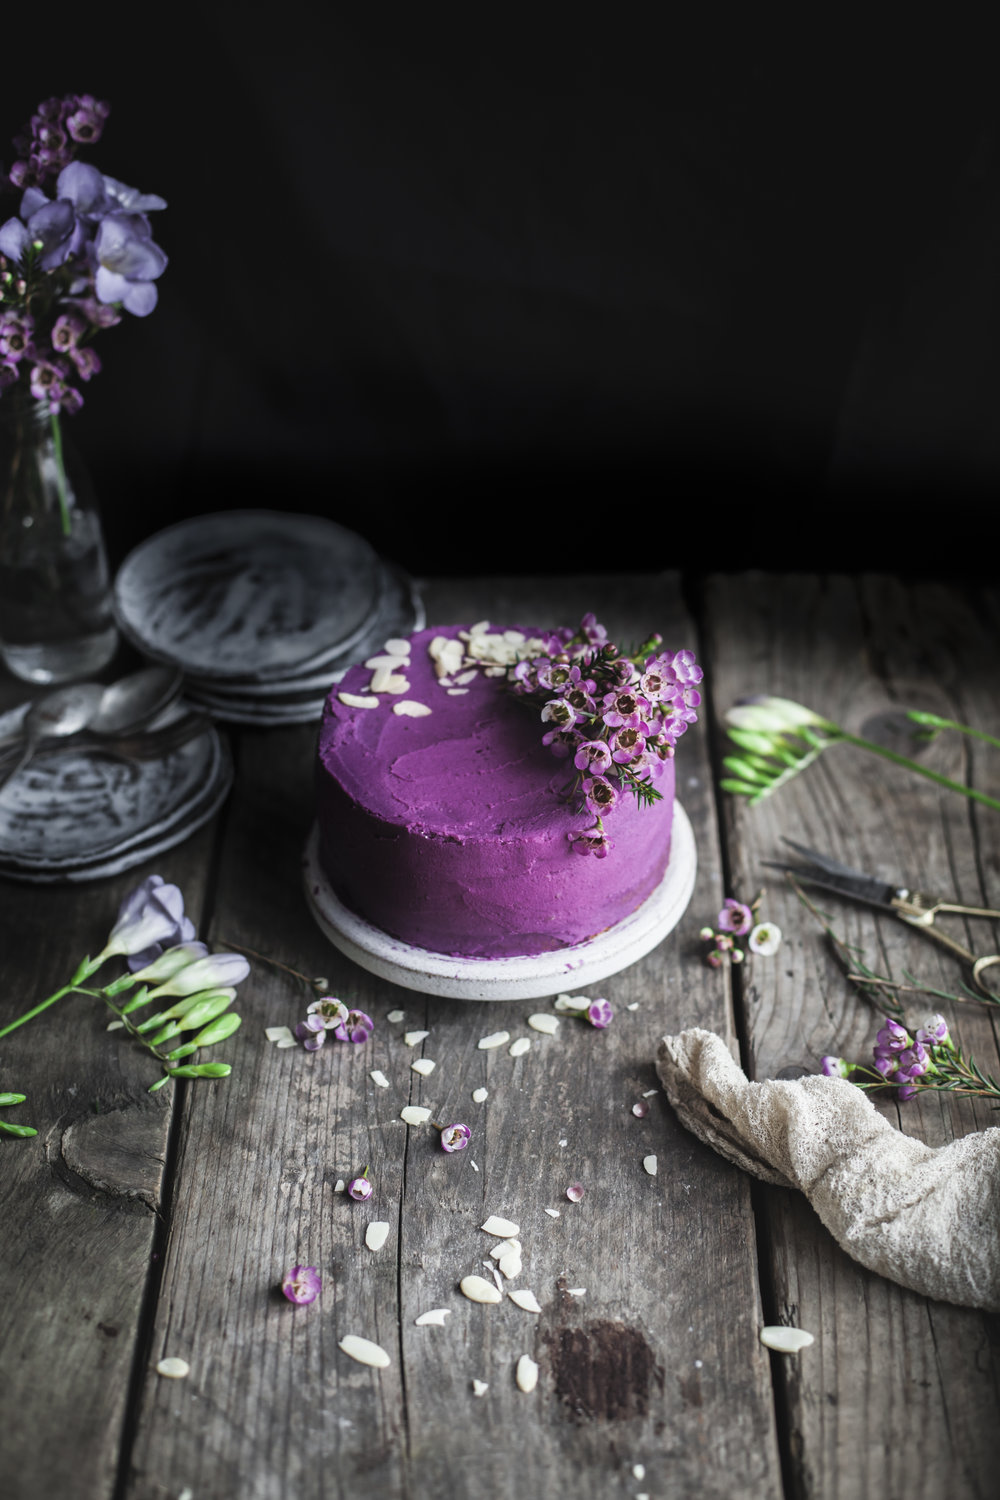 Earl Grey Lemon cake with Purple potatoes and White Chocolate Frosting_www.salvialimone.com